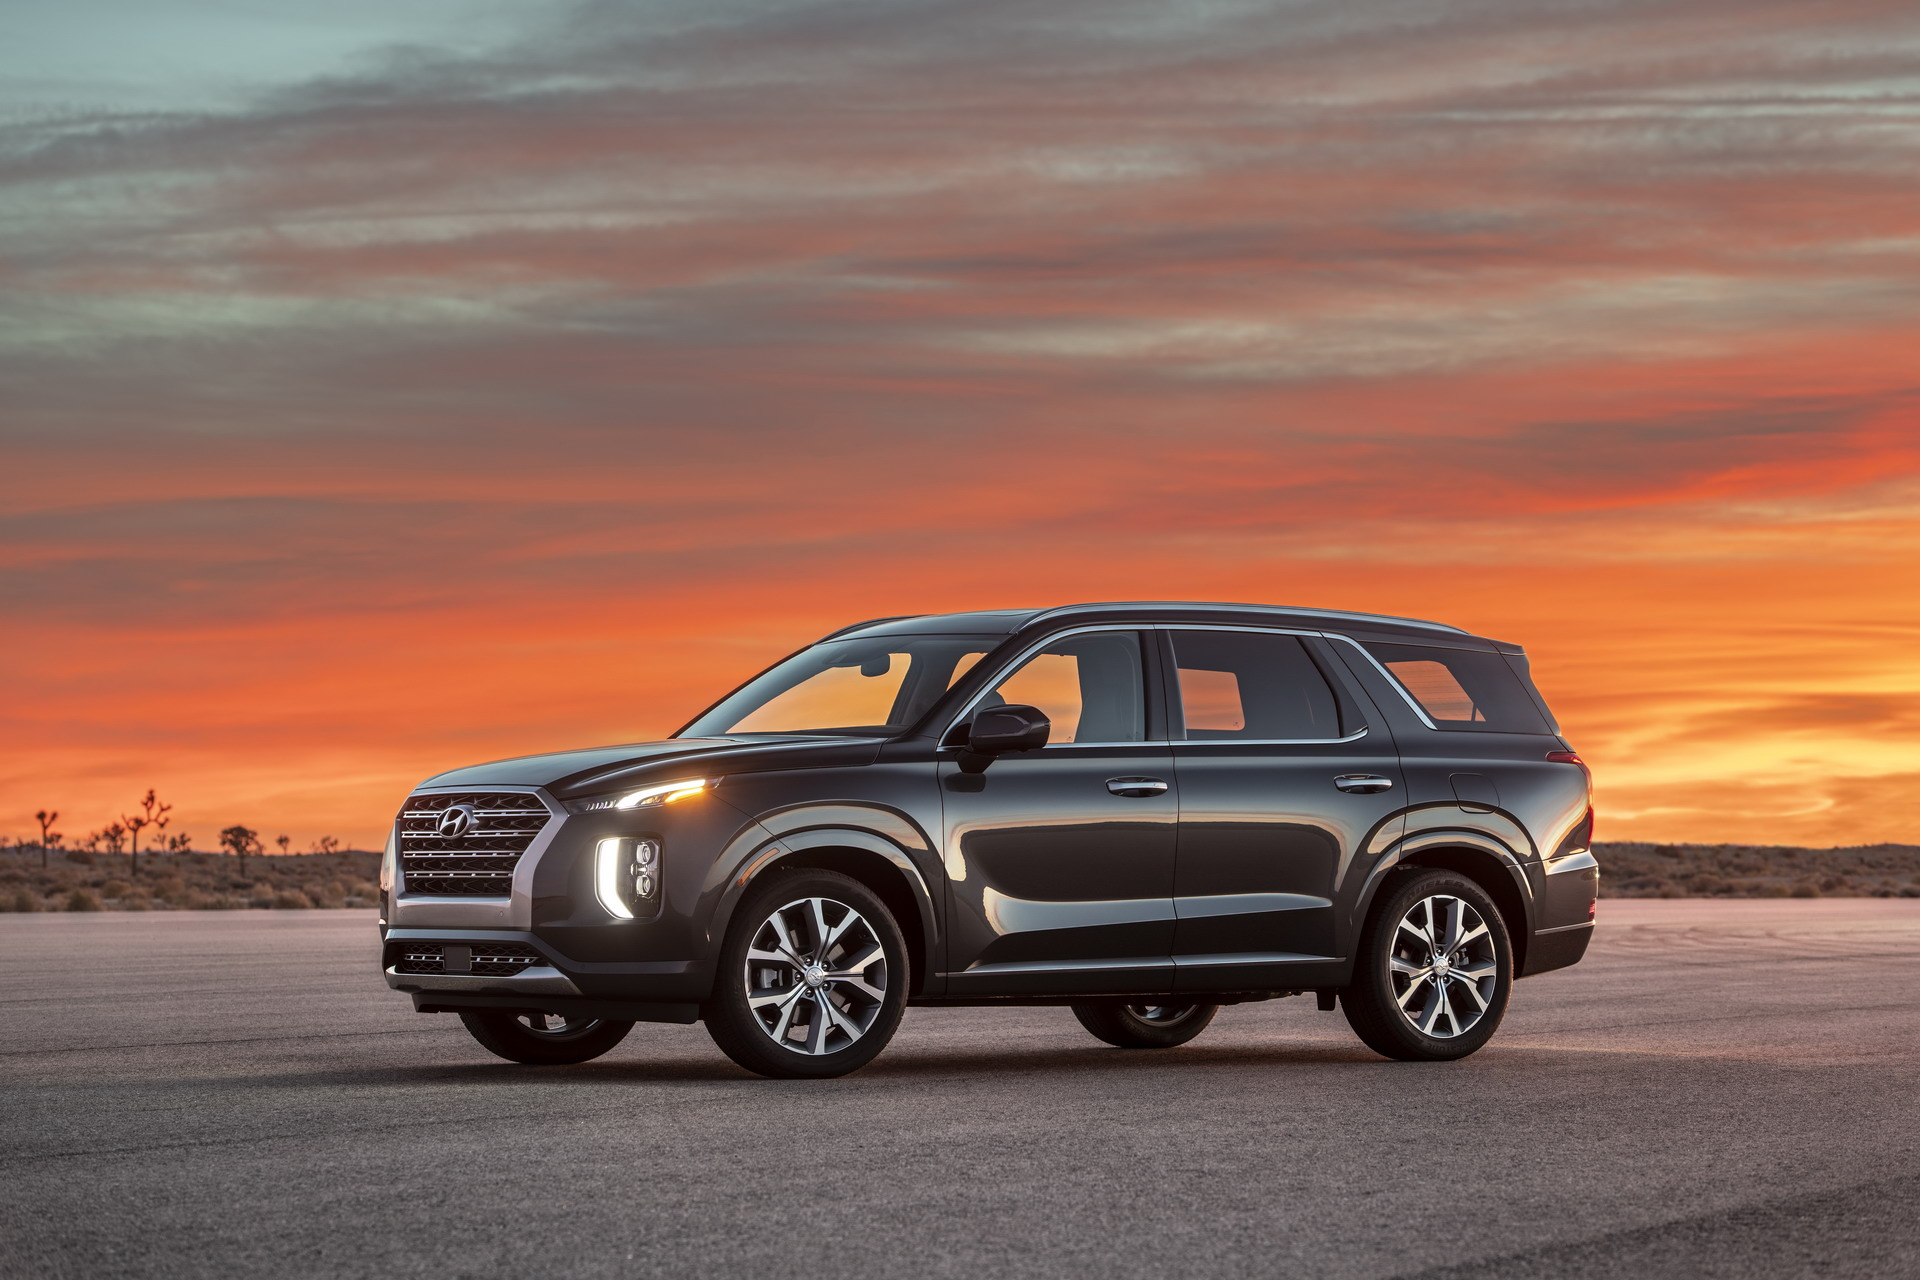 Hyundai Palisade makes a stronger SUV statement